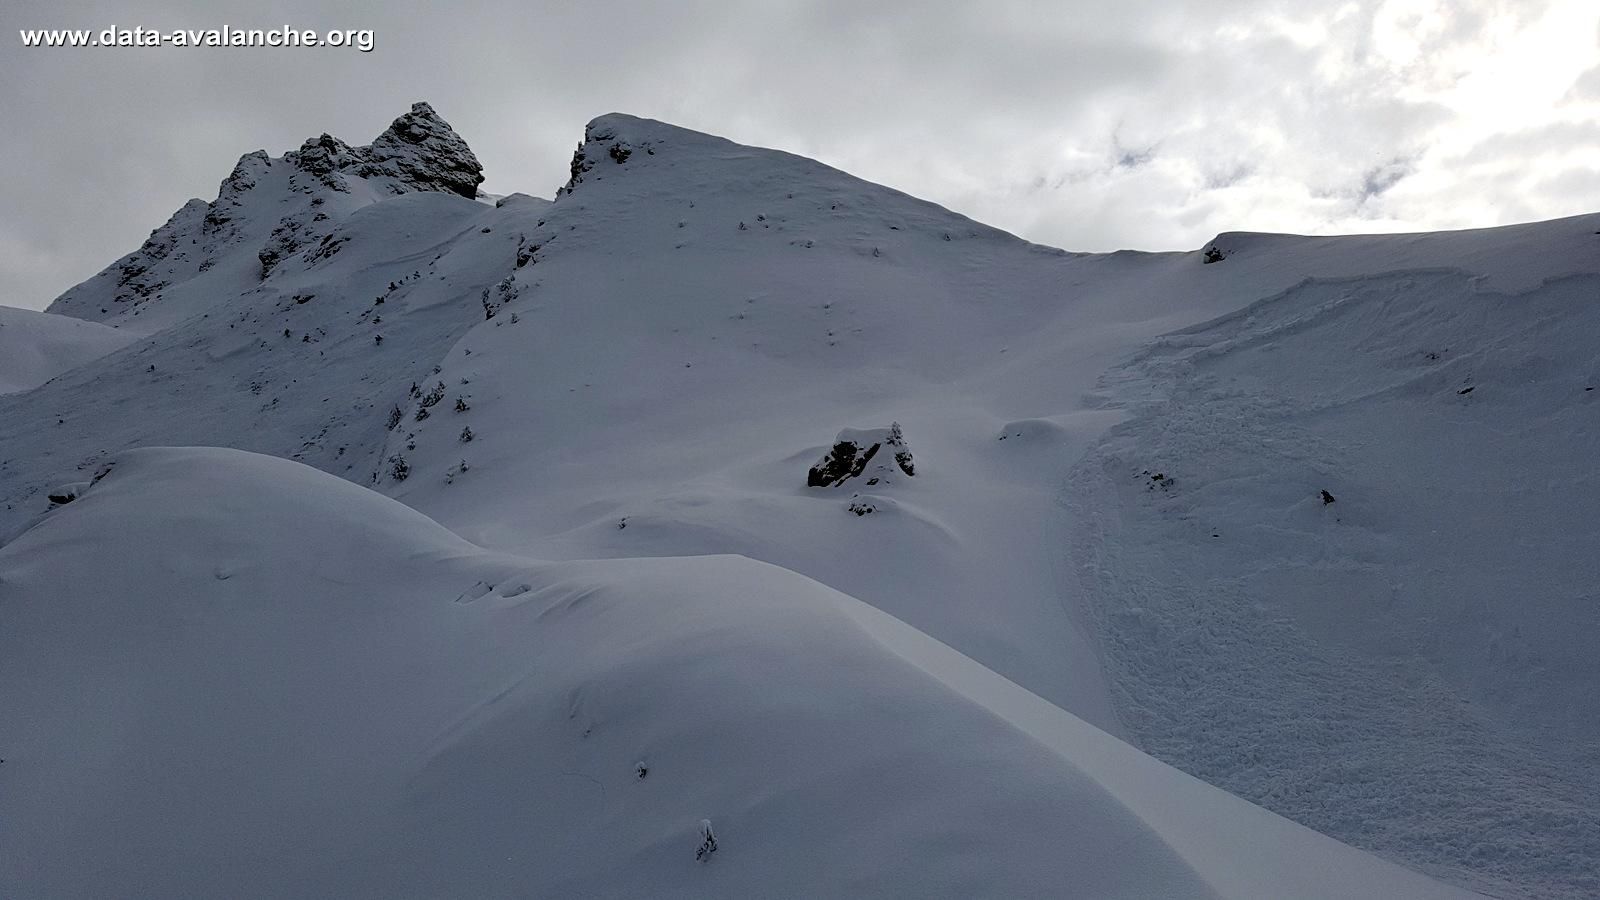 Avalanche Haute Maurienne, secteur Belle Plinier, Rocher de la Dame - Photo 1